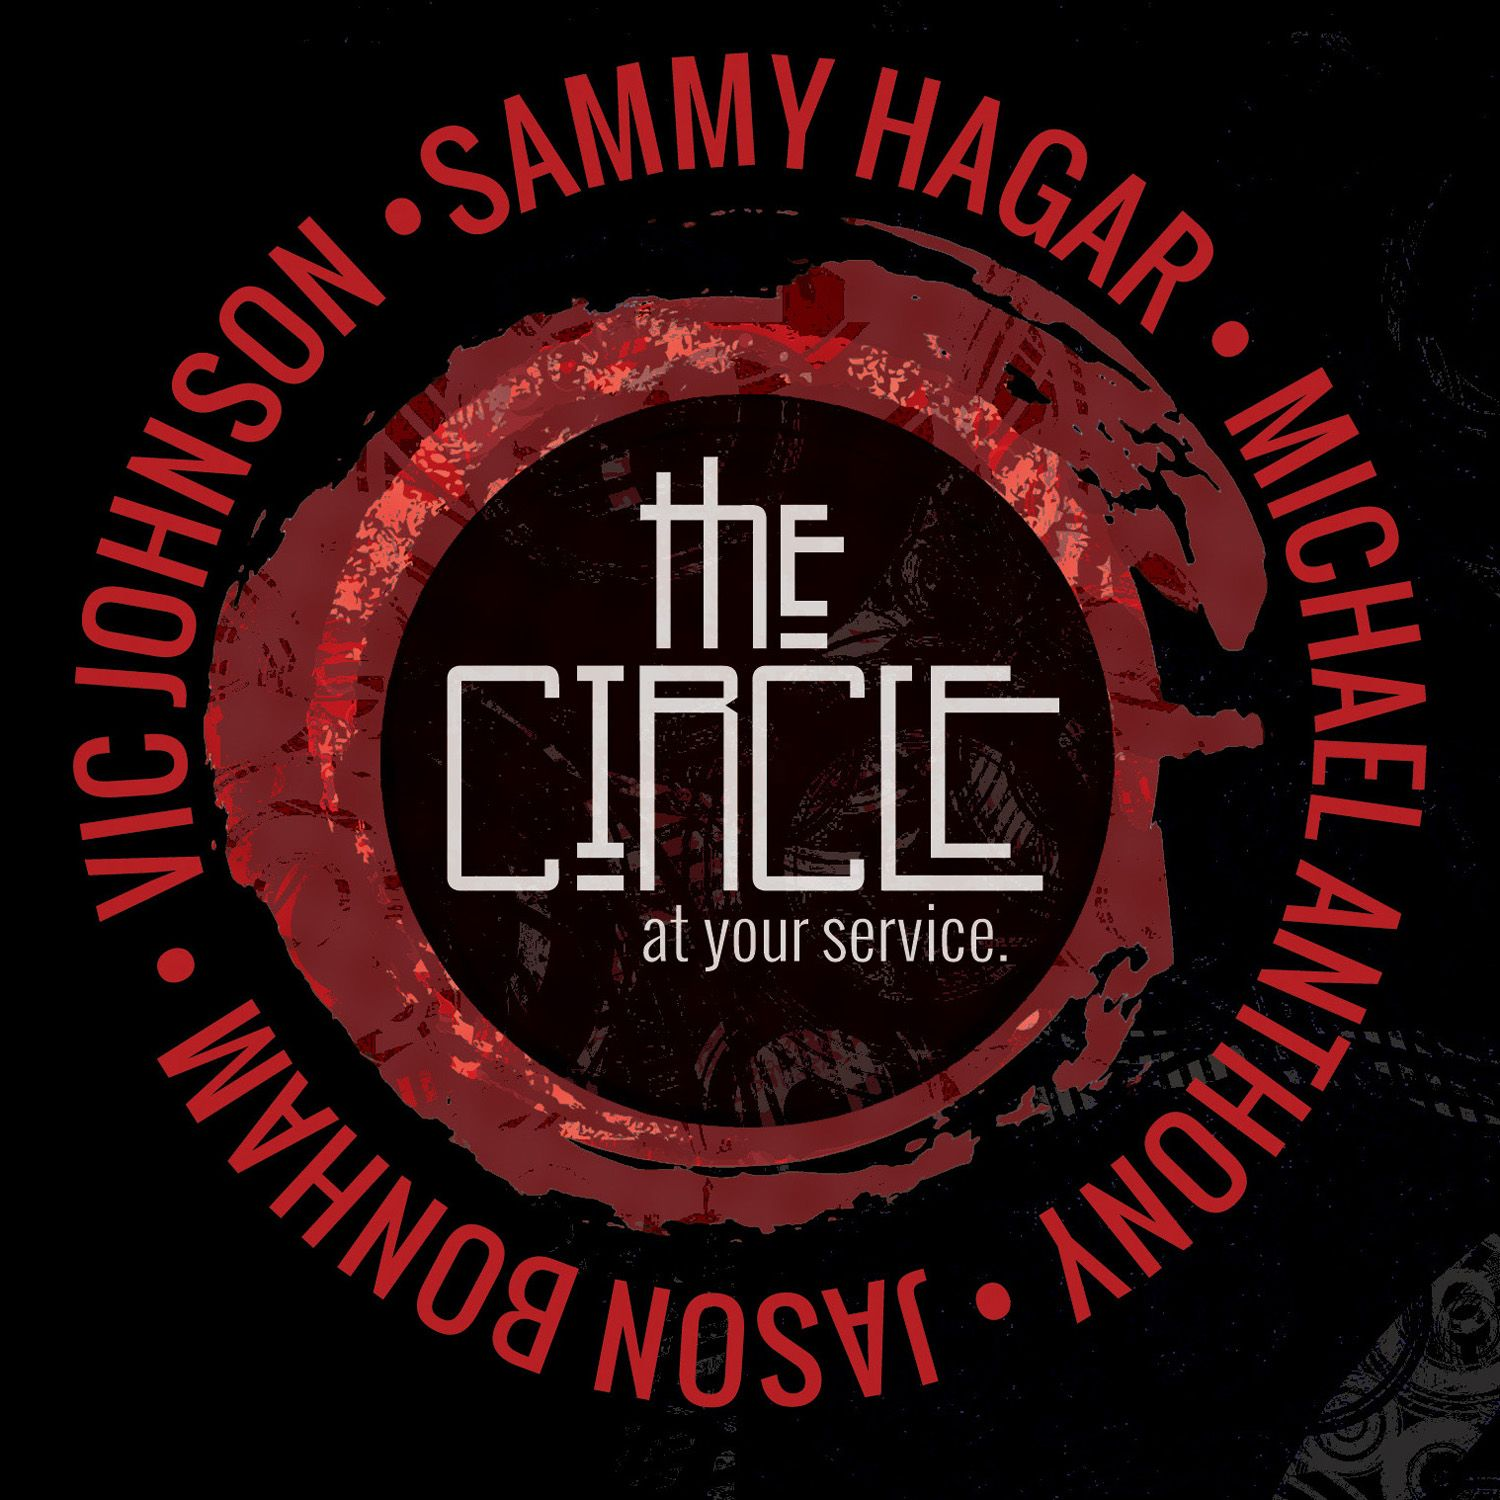 Sammy Hagar Is Without A Doubt A Man Of Many Talents And Skills From His Own Music To His Own Club T Sammy Hagar Classic Rock Albums Sammy Hagar The Circle